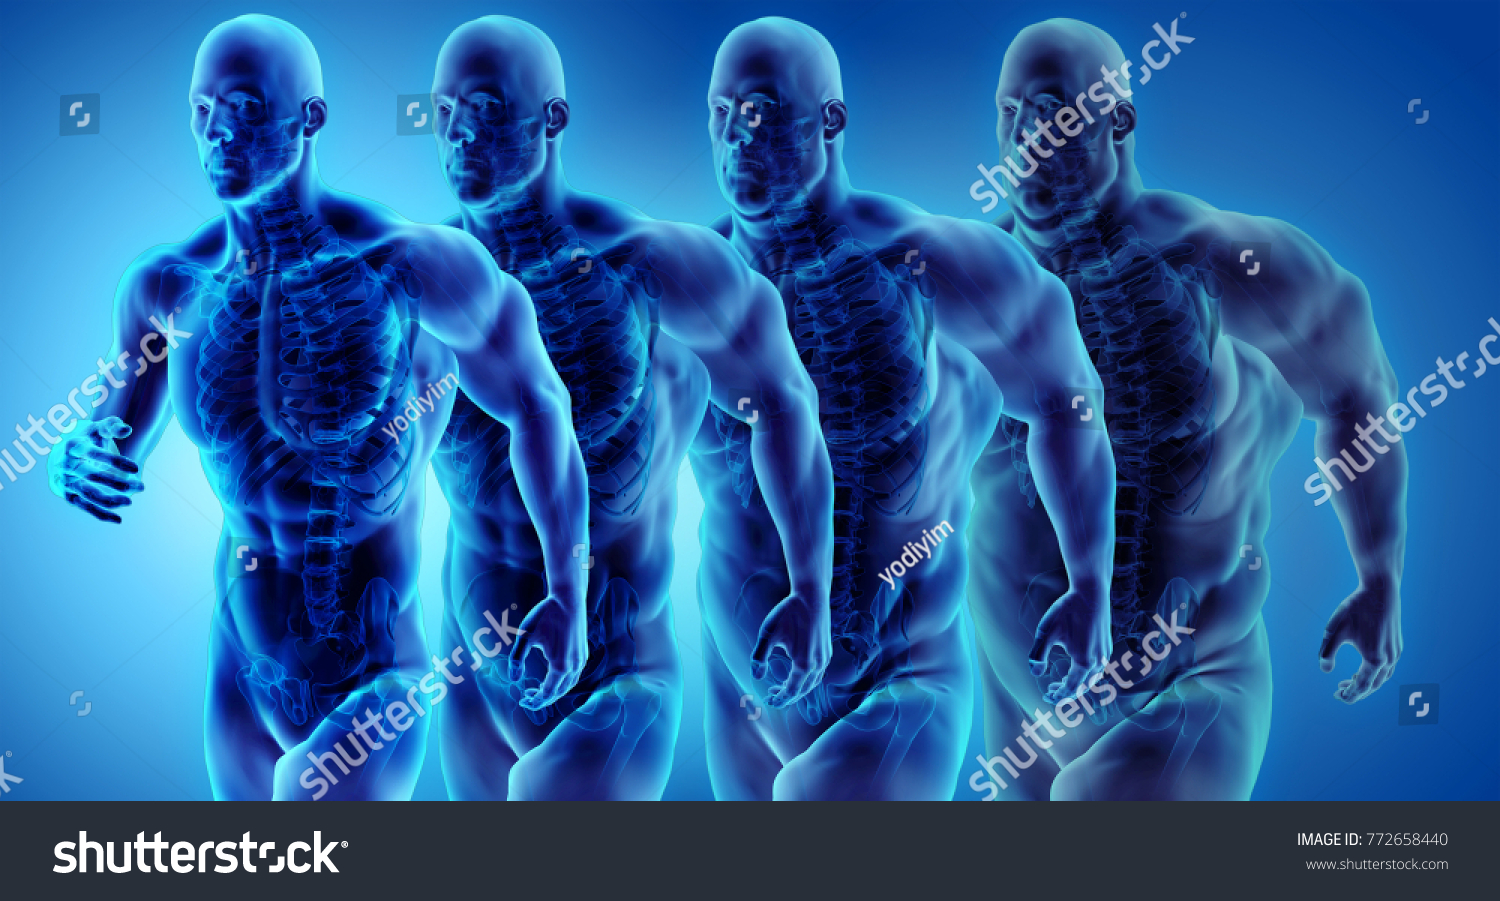 Royalty Free Stock Illustration of Man Transformation Belly Fat ...